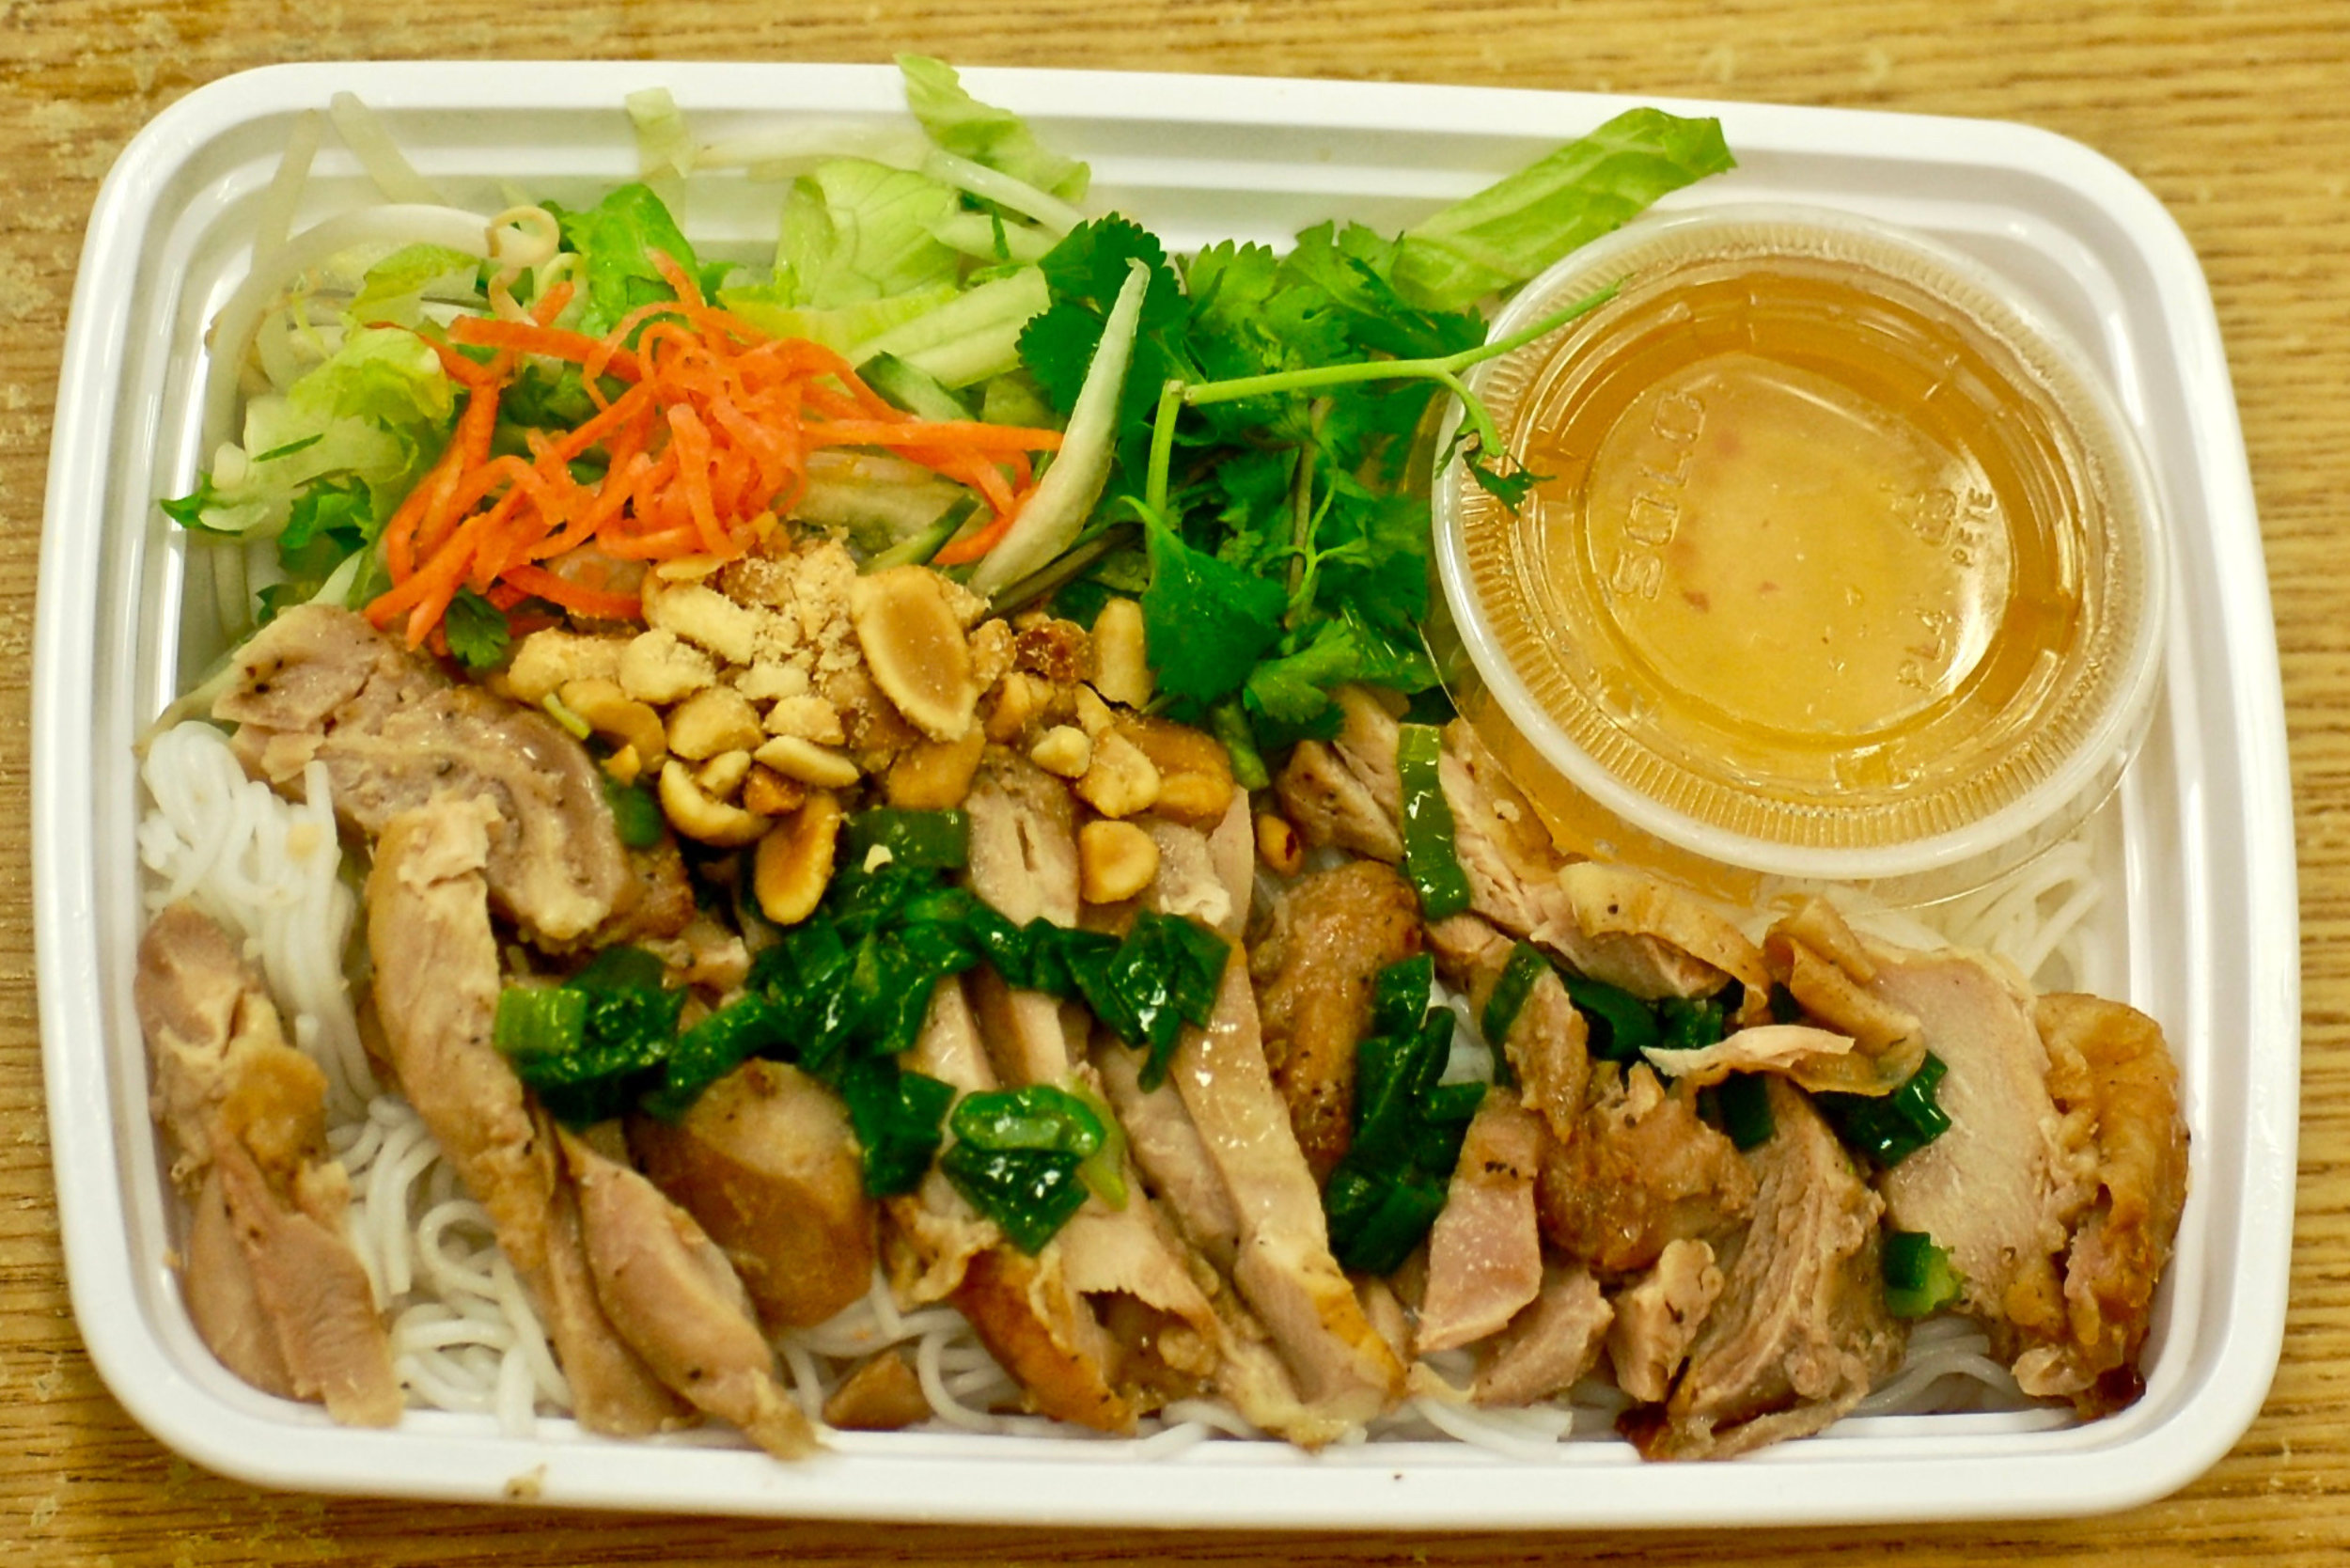 Grilled Chicken over Vermicelli Noodles